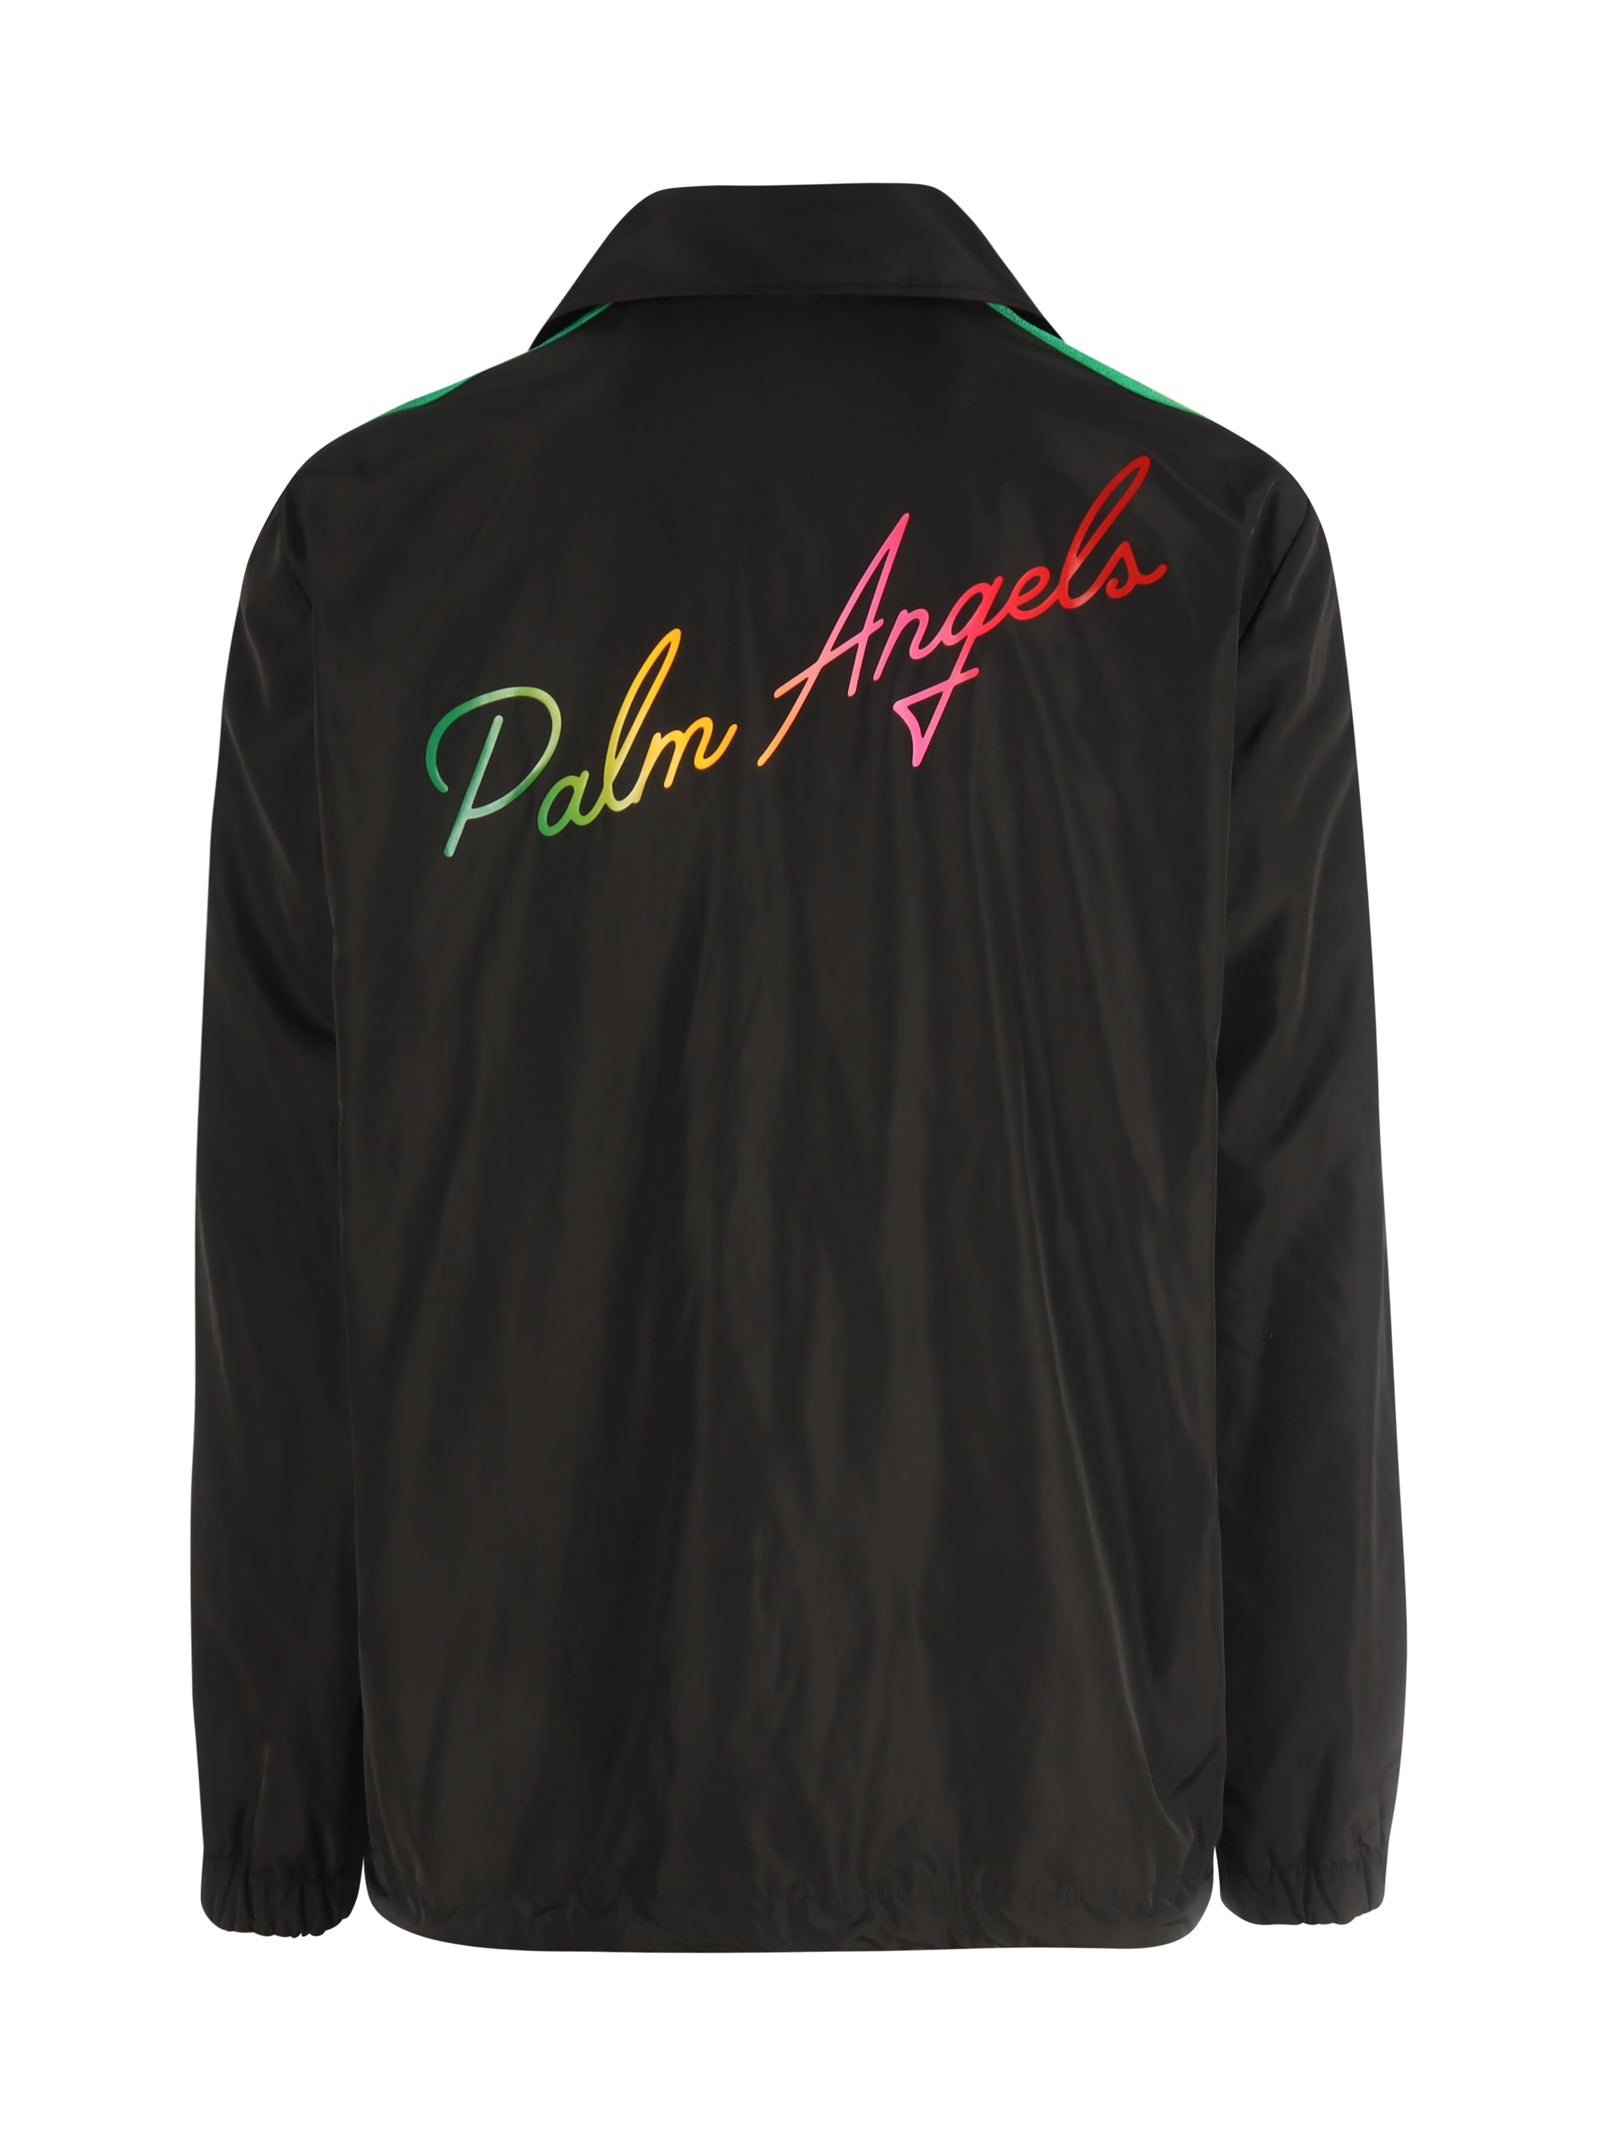 MIAMI LOGO JACKET